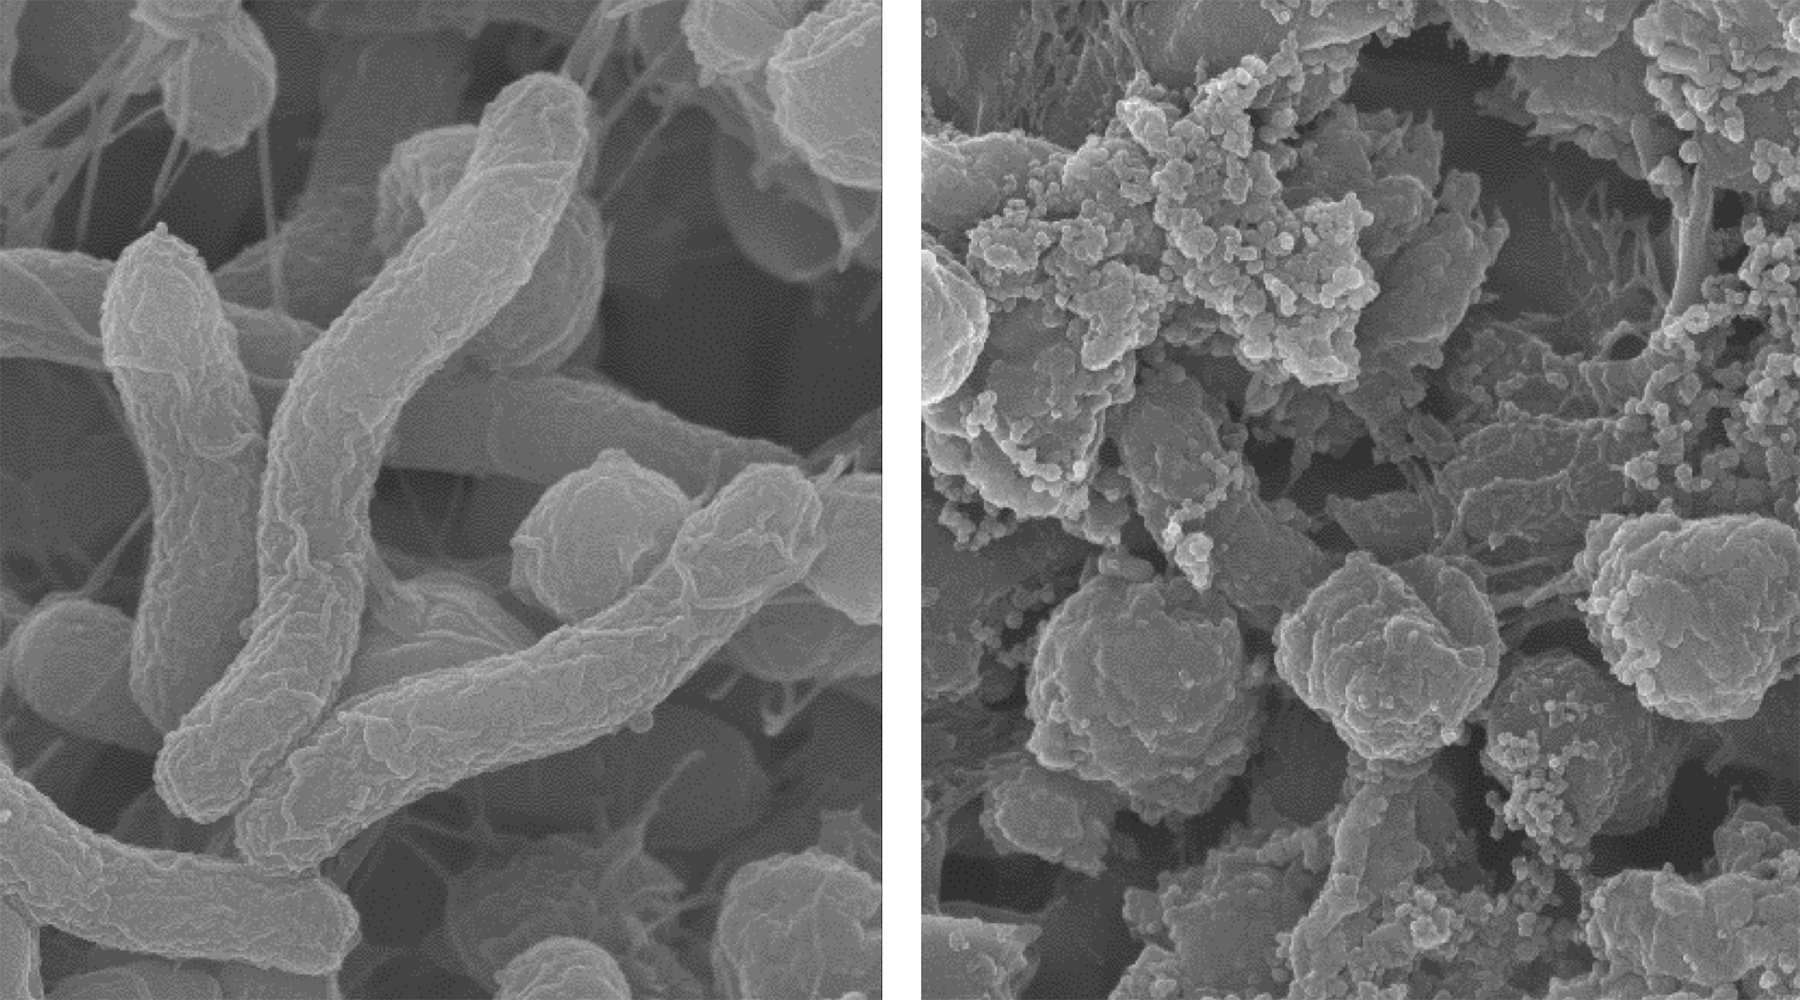 At normal tissue pH (left), the agent does not kill bacteria. But in an acidic environment (right), it disrupts the H. pylori bacteria's membranes to kill it. Photo courtesy of Jianjun Cheng